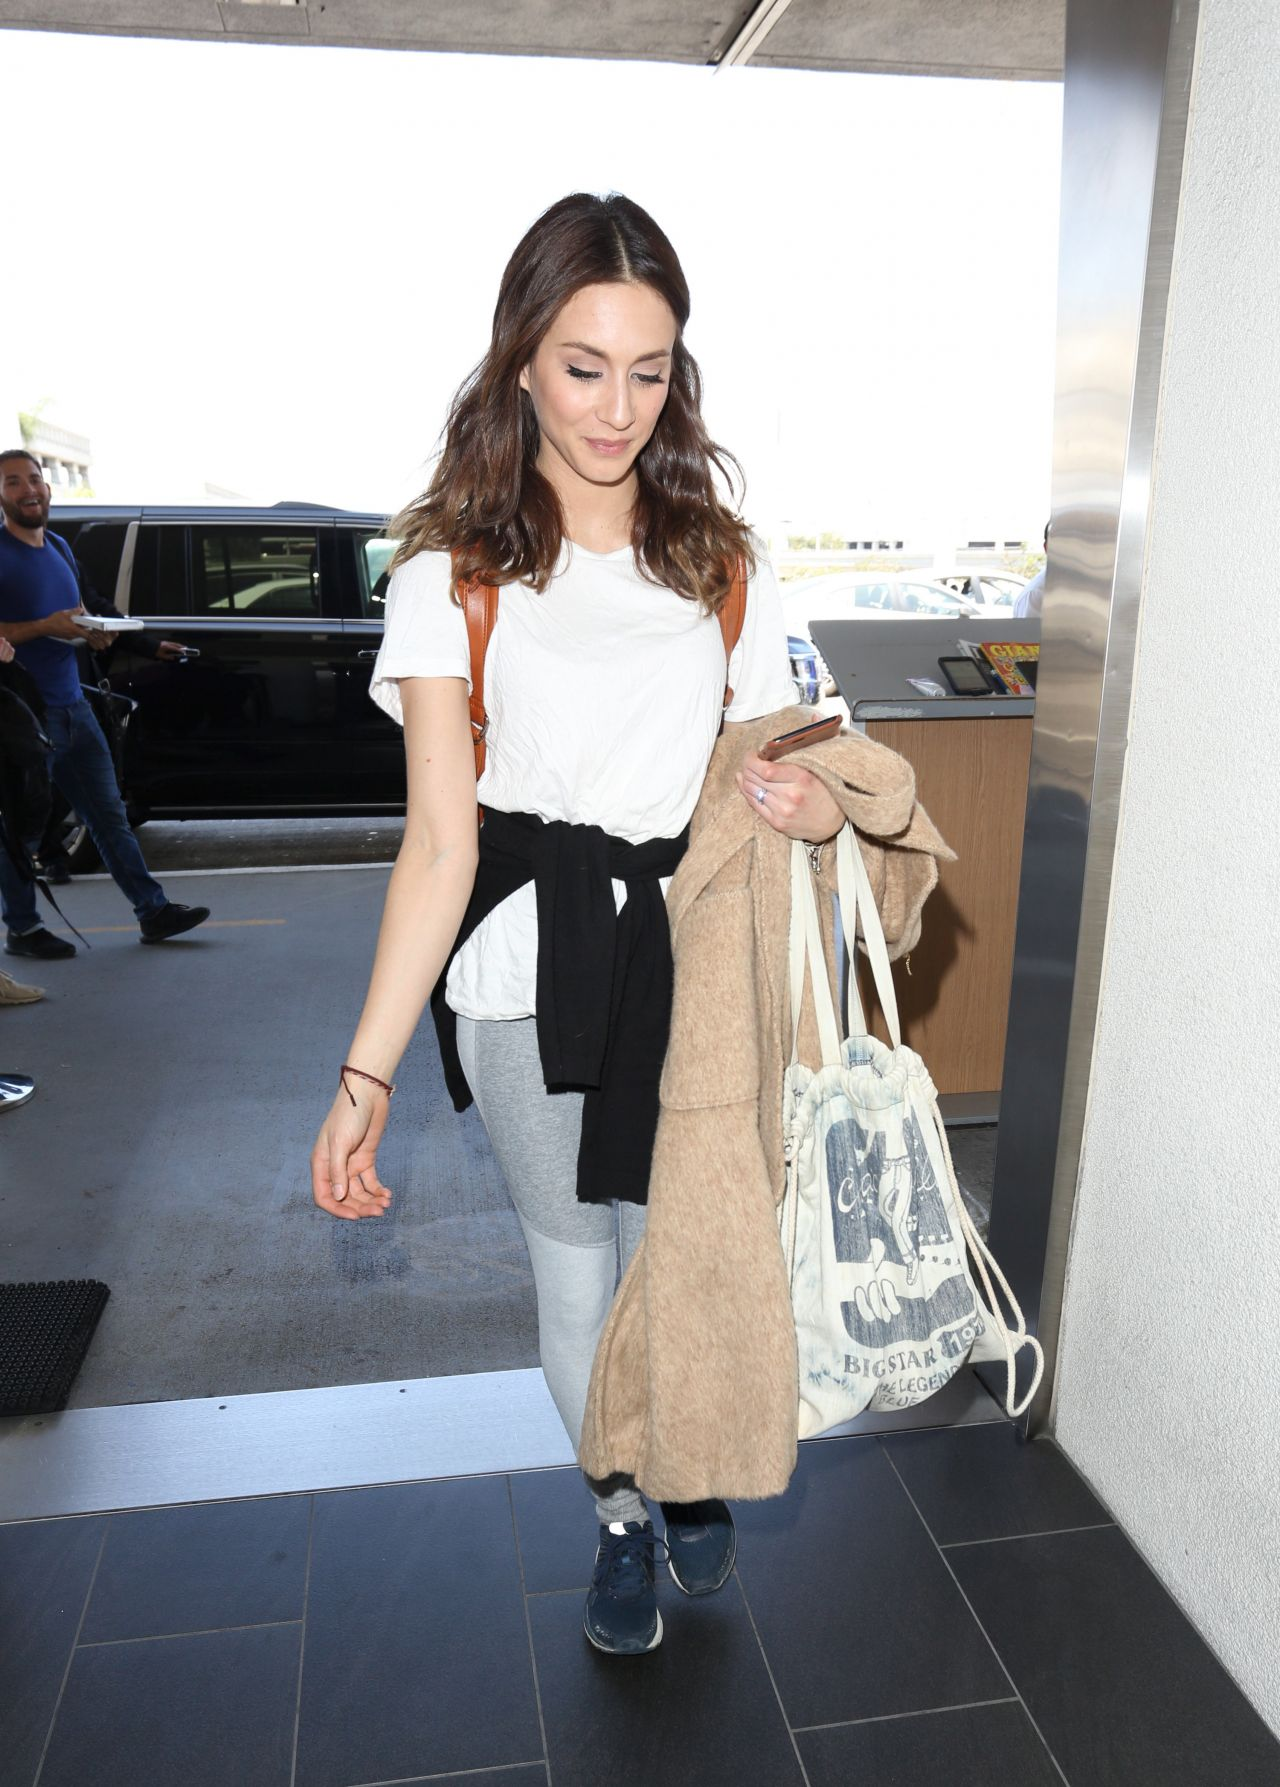 Troian bellisario travel outfit at lax airport nude (43 photo), Twitter Celebrites pics